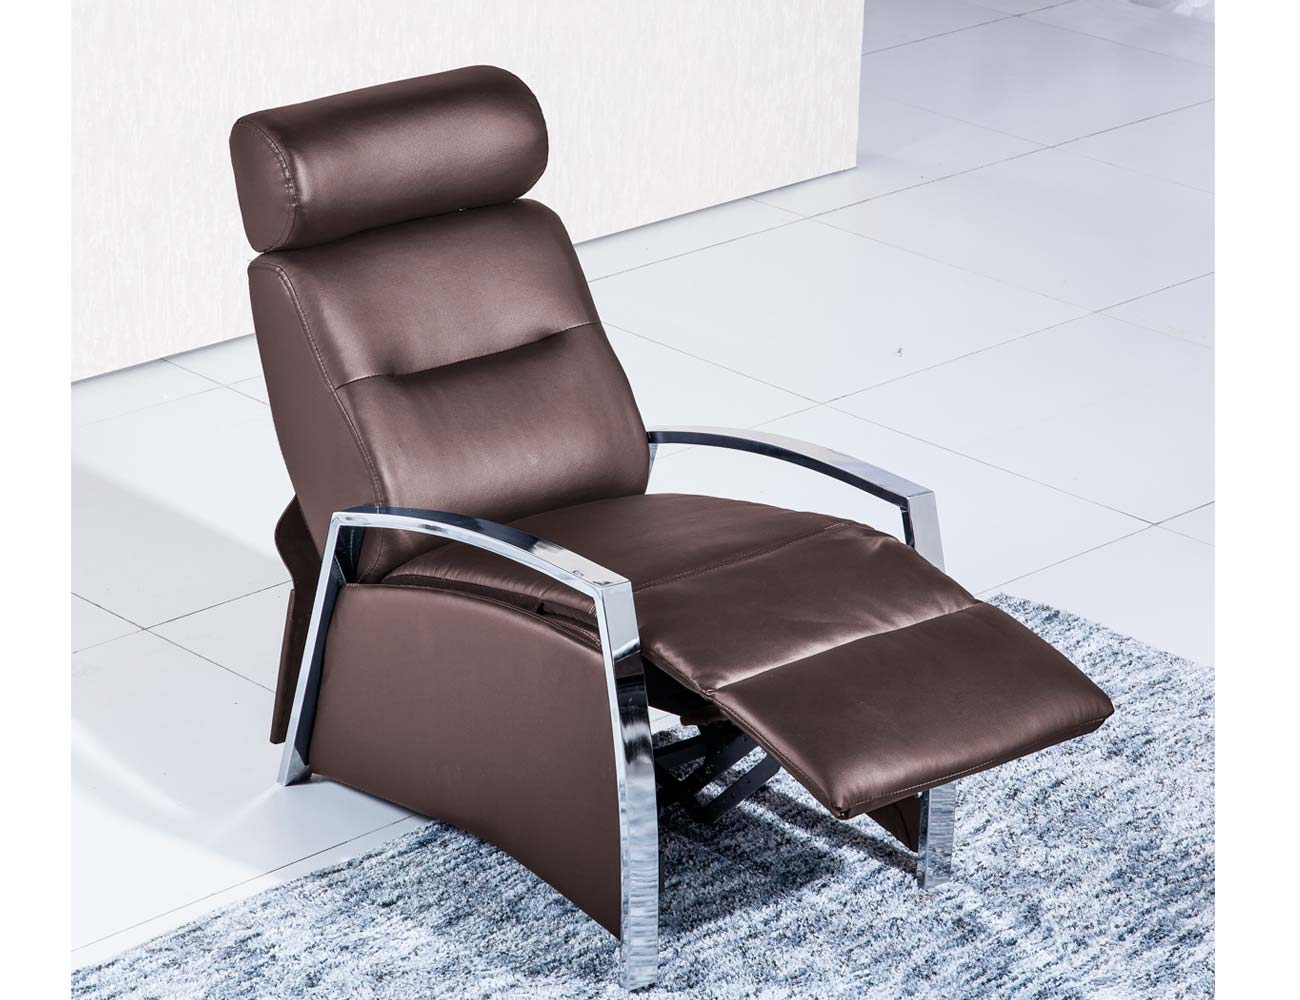 Sillon relax simil piel chocolate 2